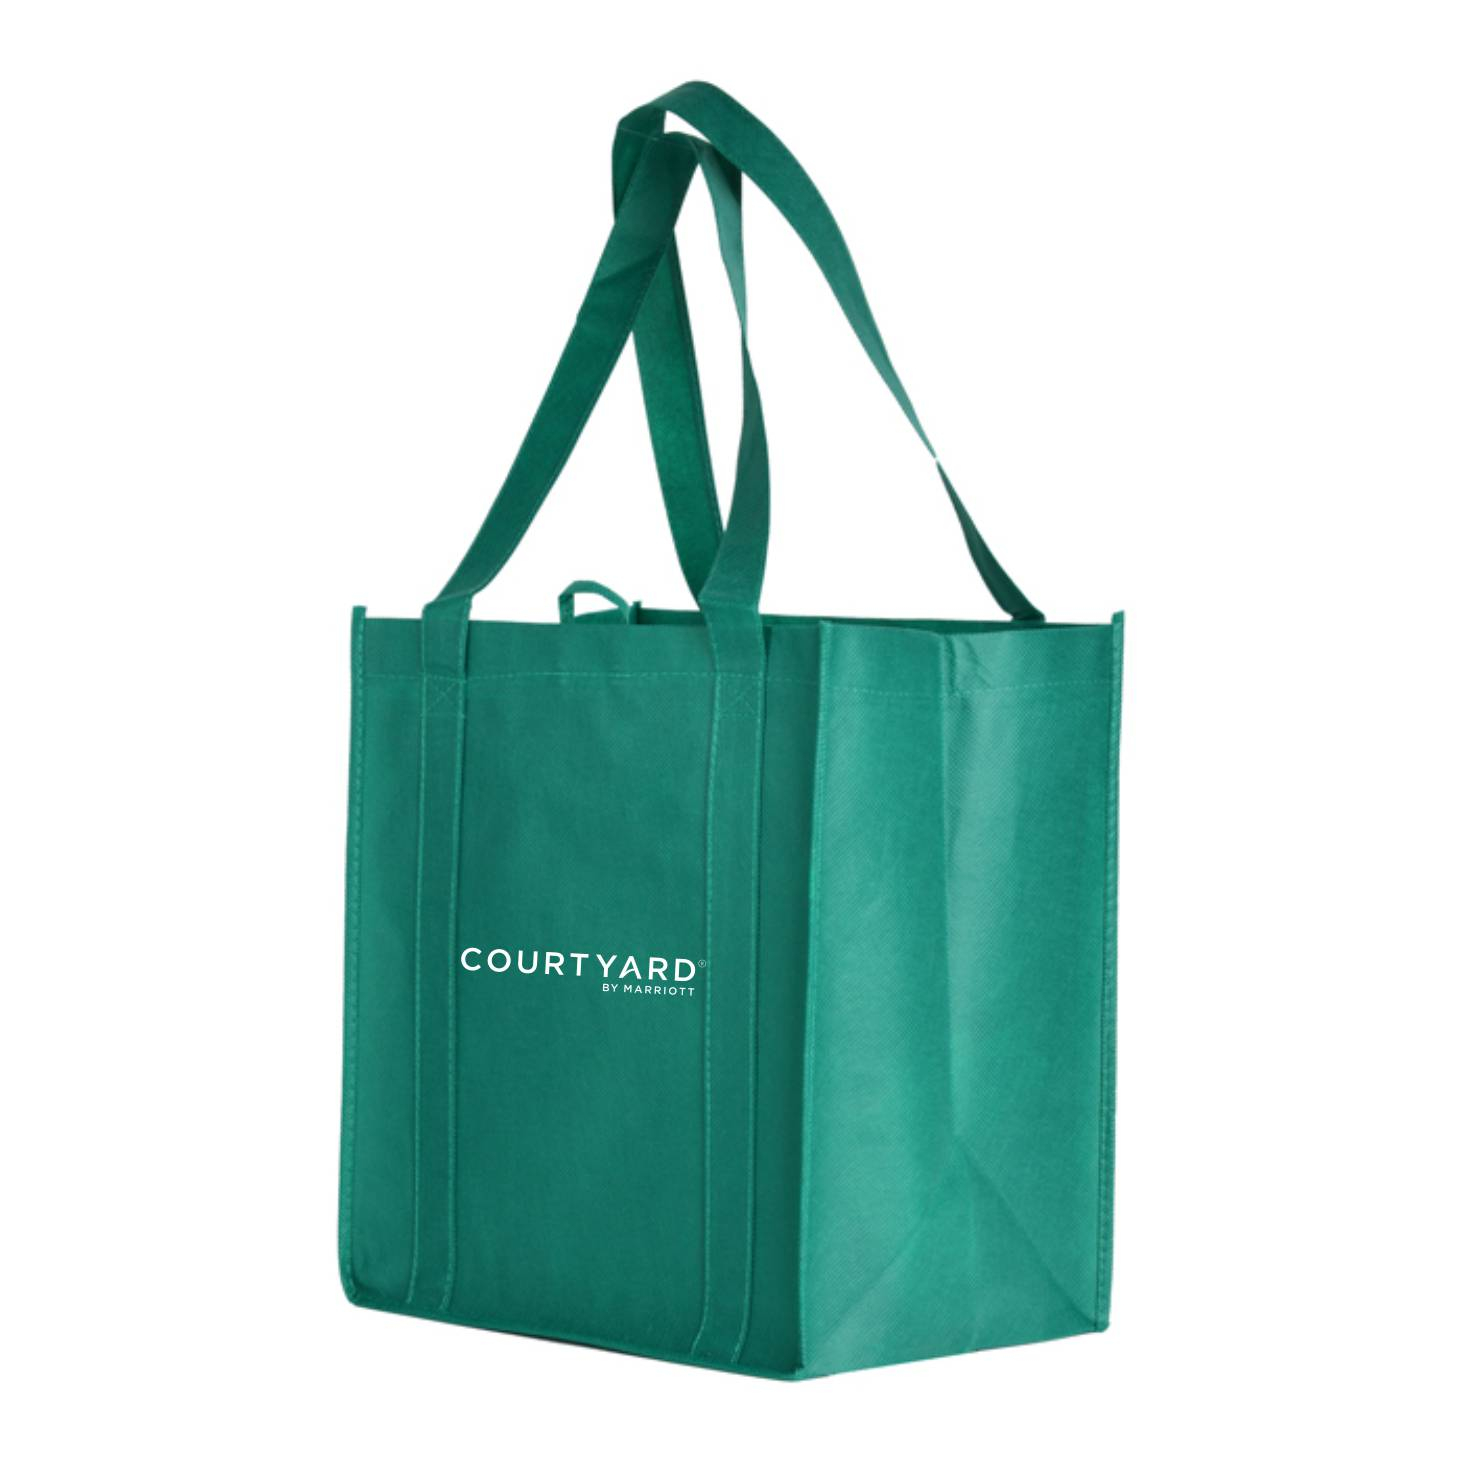 """Eco-Friendly Reusable Shopping Tote Bags. Color: Dark Green. 13.5"""" x 12.5"""" x 8.5"""" - Includes Gusset Insert."""